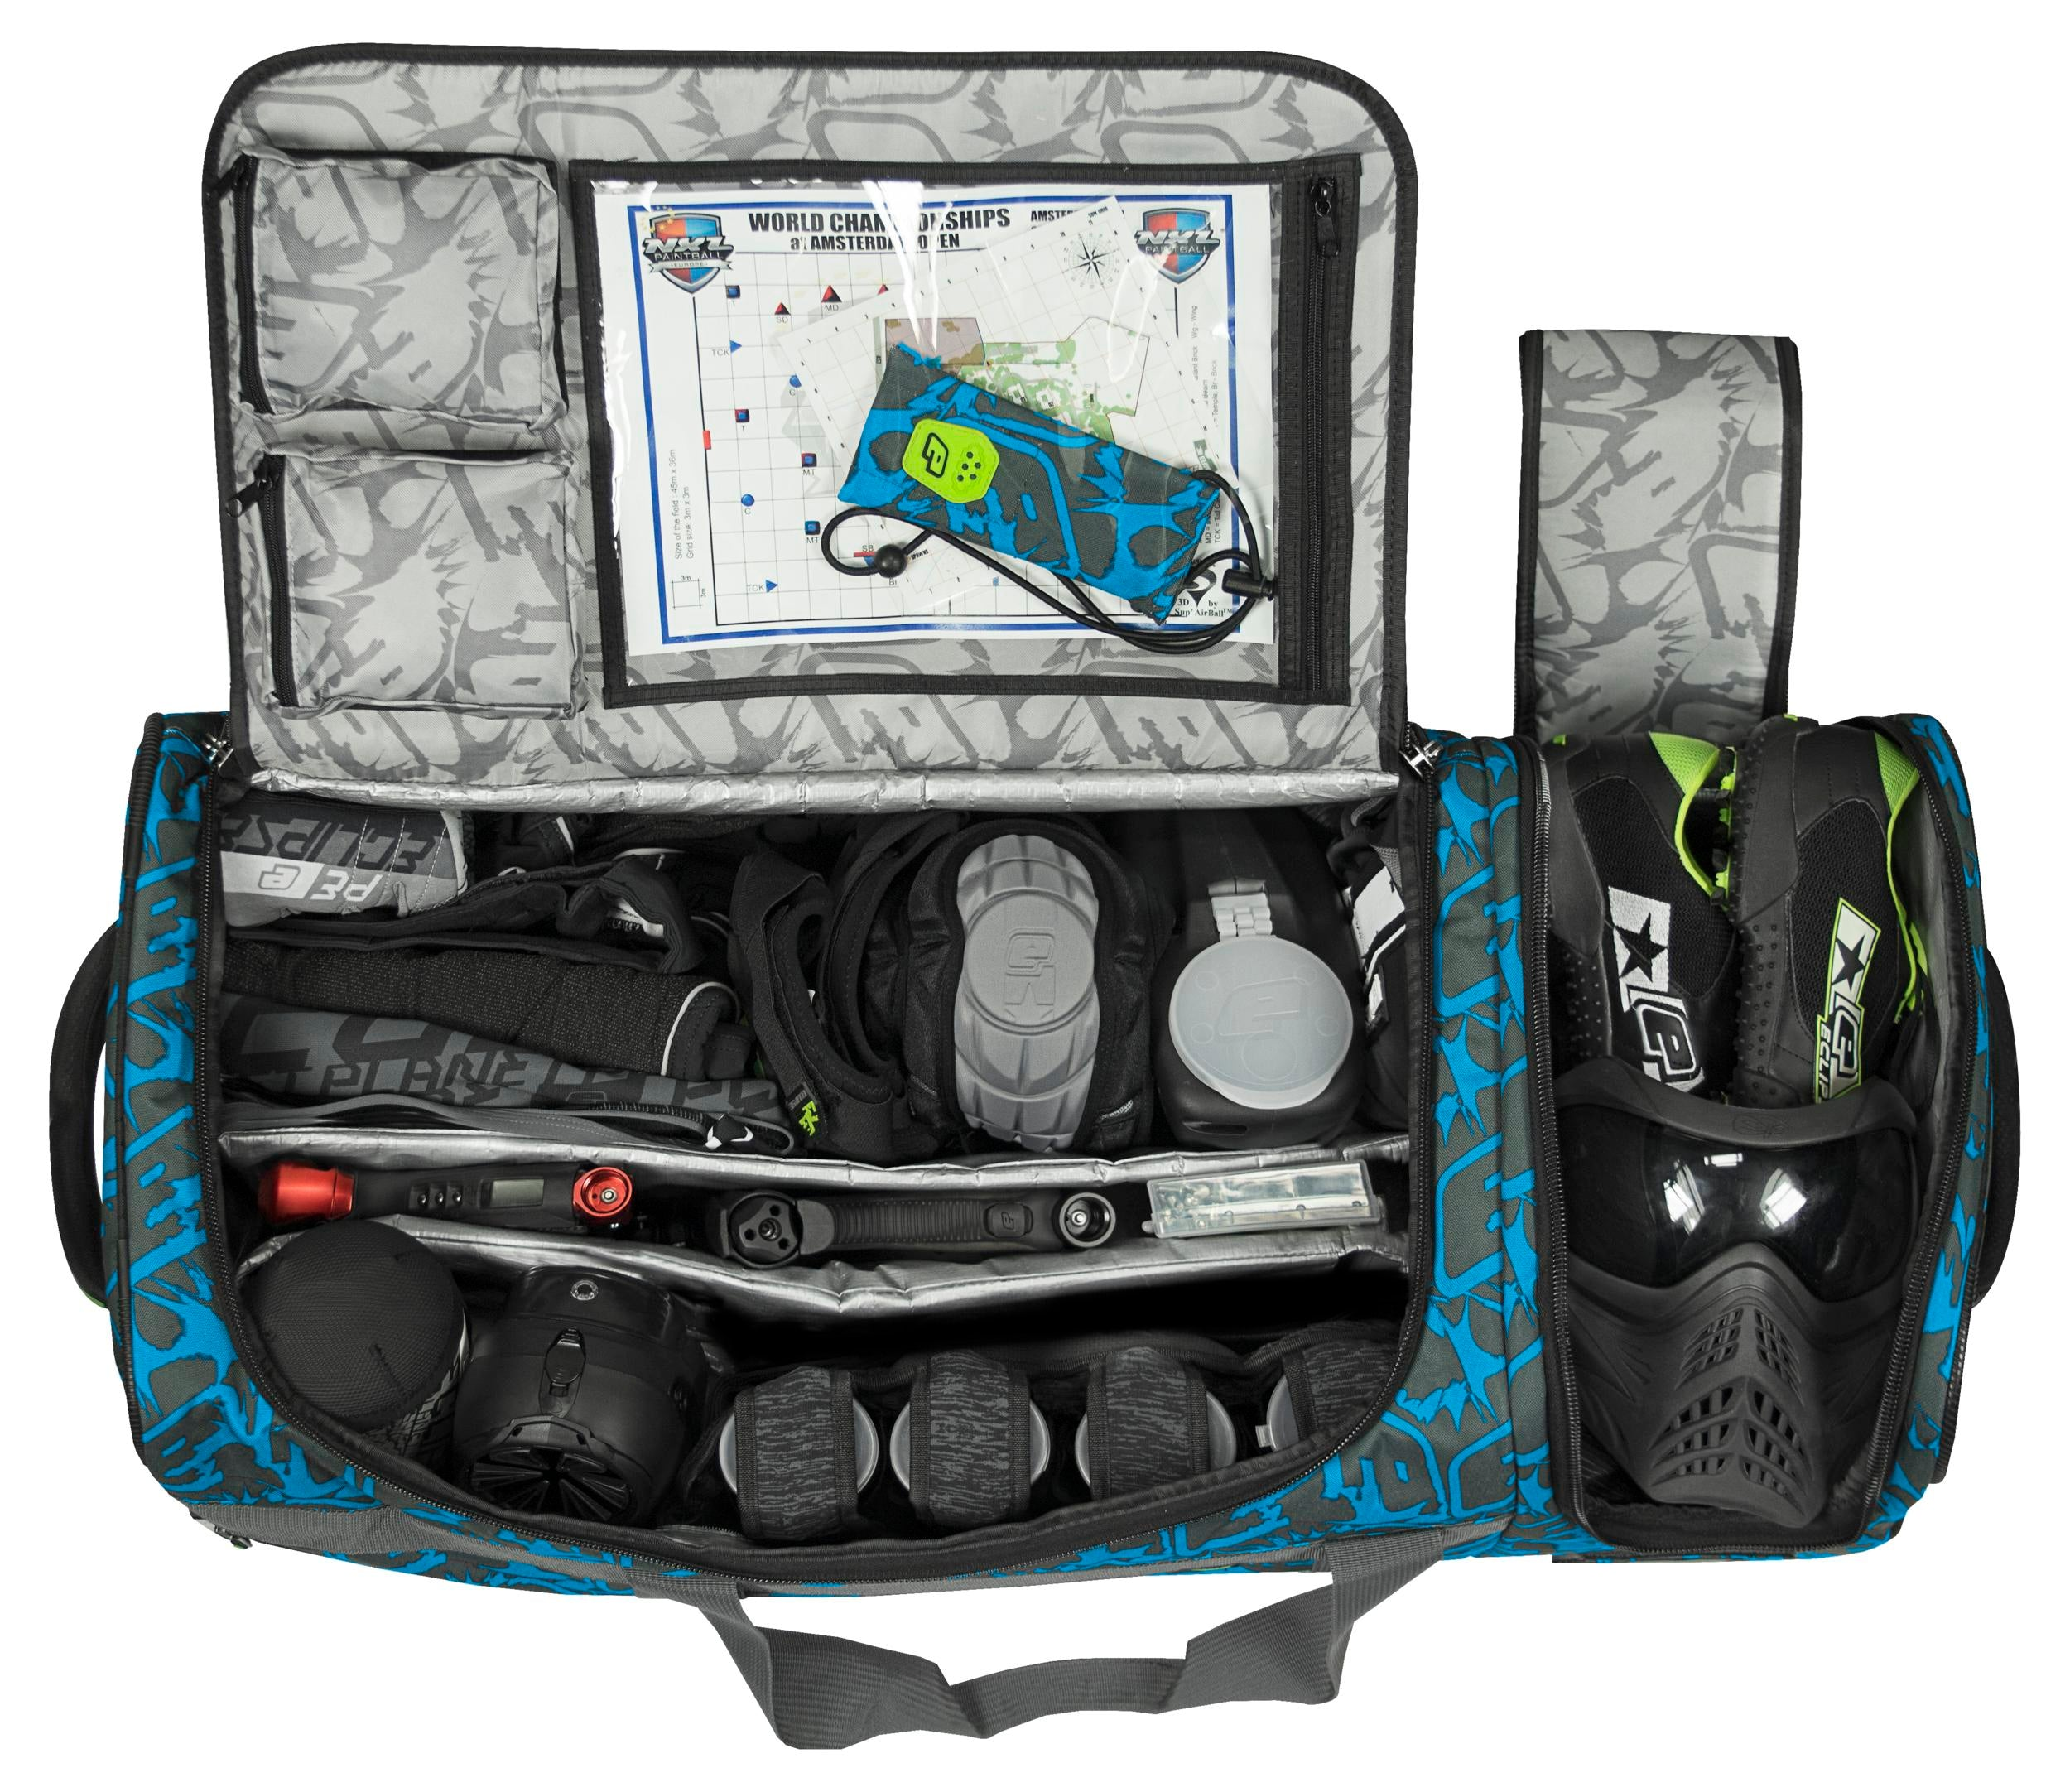 Planet Eclipse GX2 Classic Kitbag / Gearbag - HDE Earth